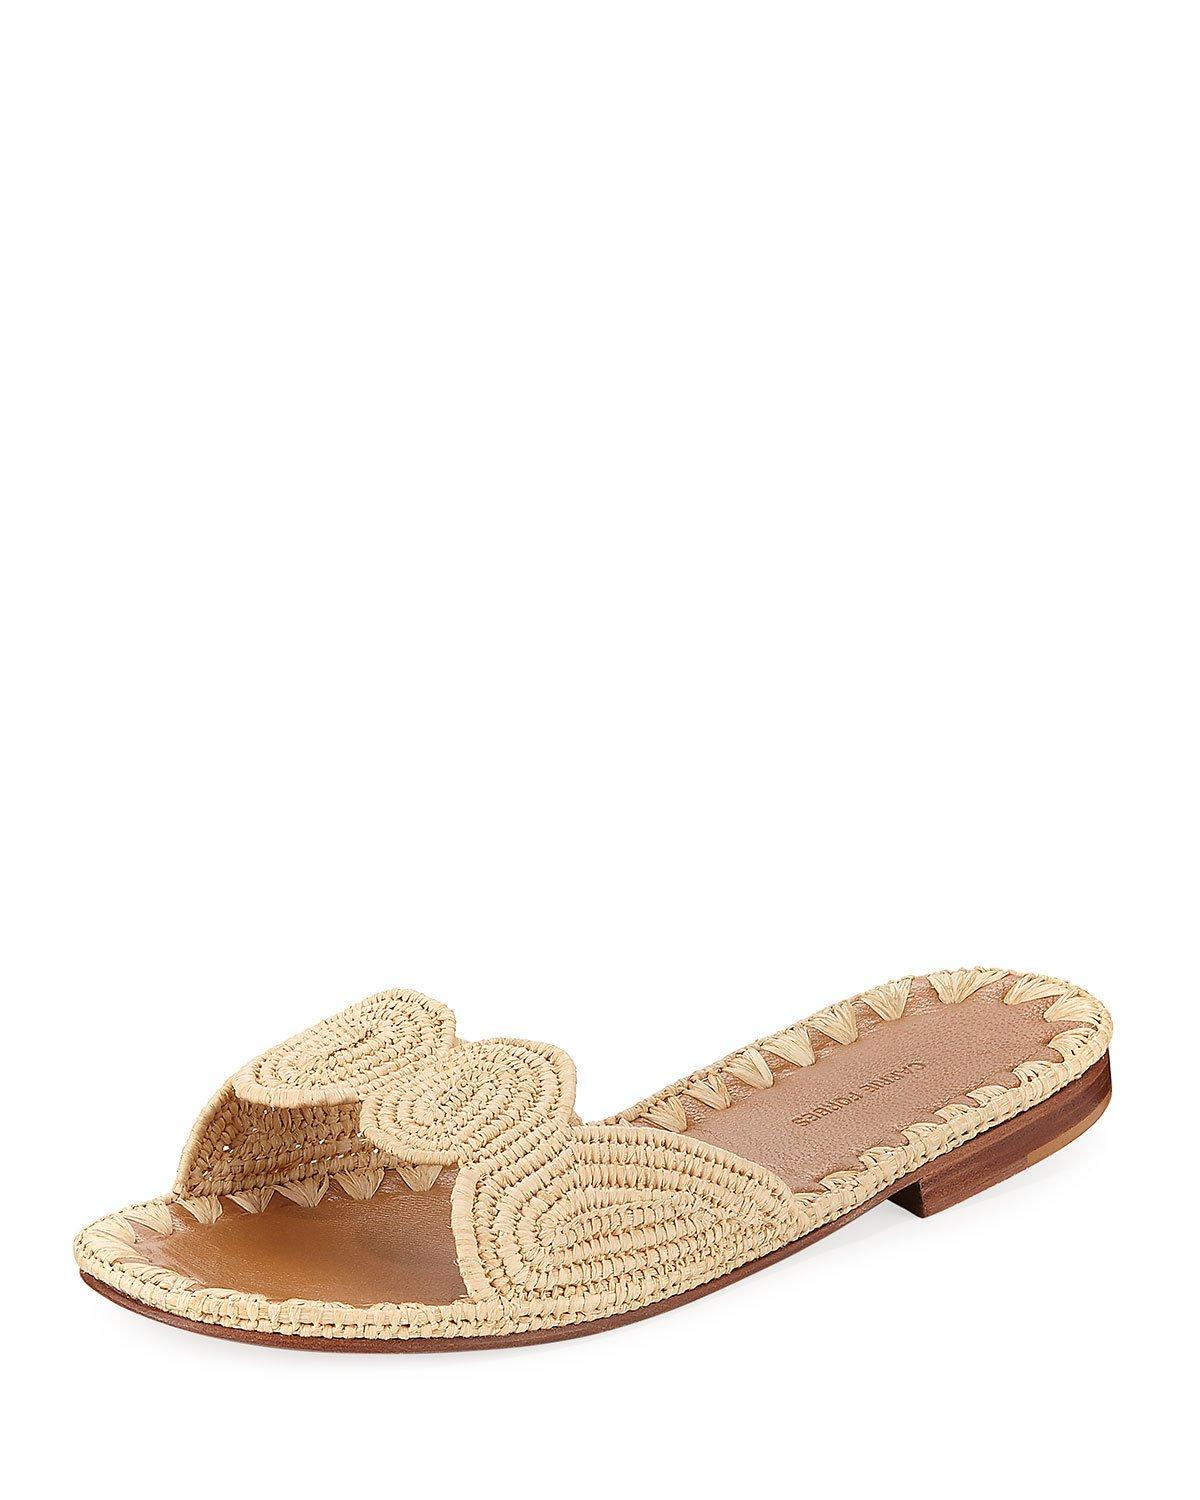 9637743e0c9 Carrie Forbes Naima Woven Raffia Slide Sandals